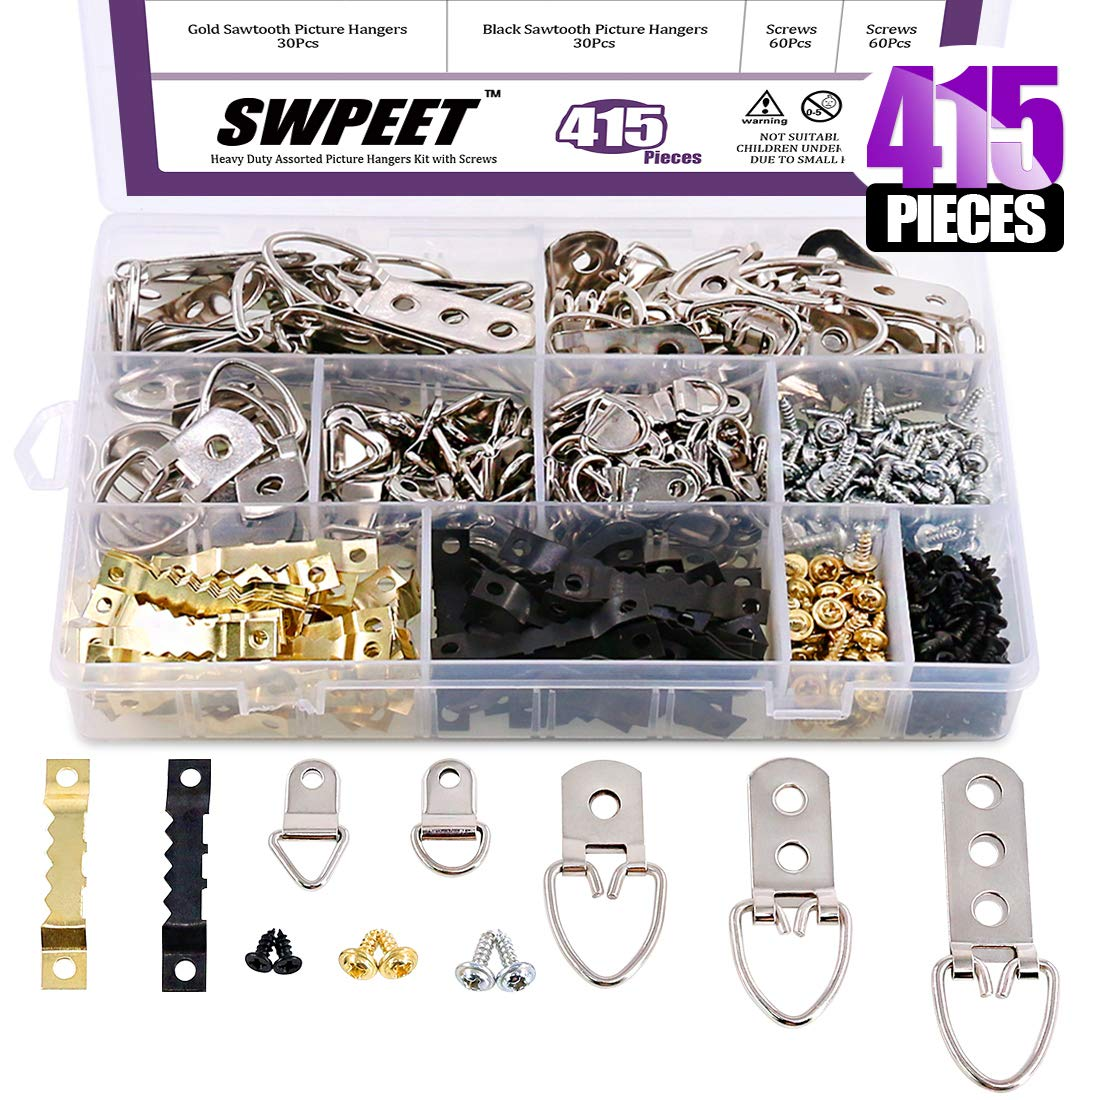 Swpeet 415 Pcs Heavy Duty Assorted Picture Hangers Kit with Screws, Picture Hangers Assortment Kit for Picture Hanging Solutions with Transparent Box - 7 Models by Swpeet